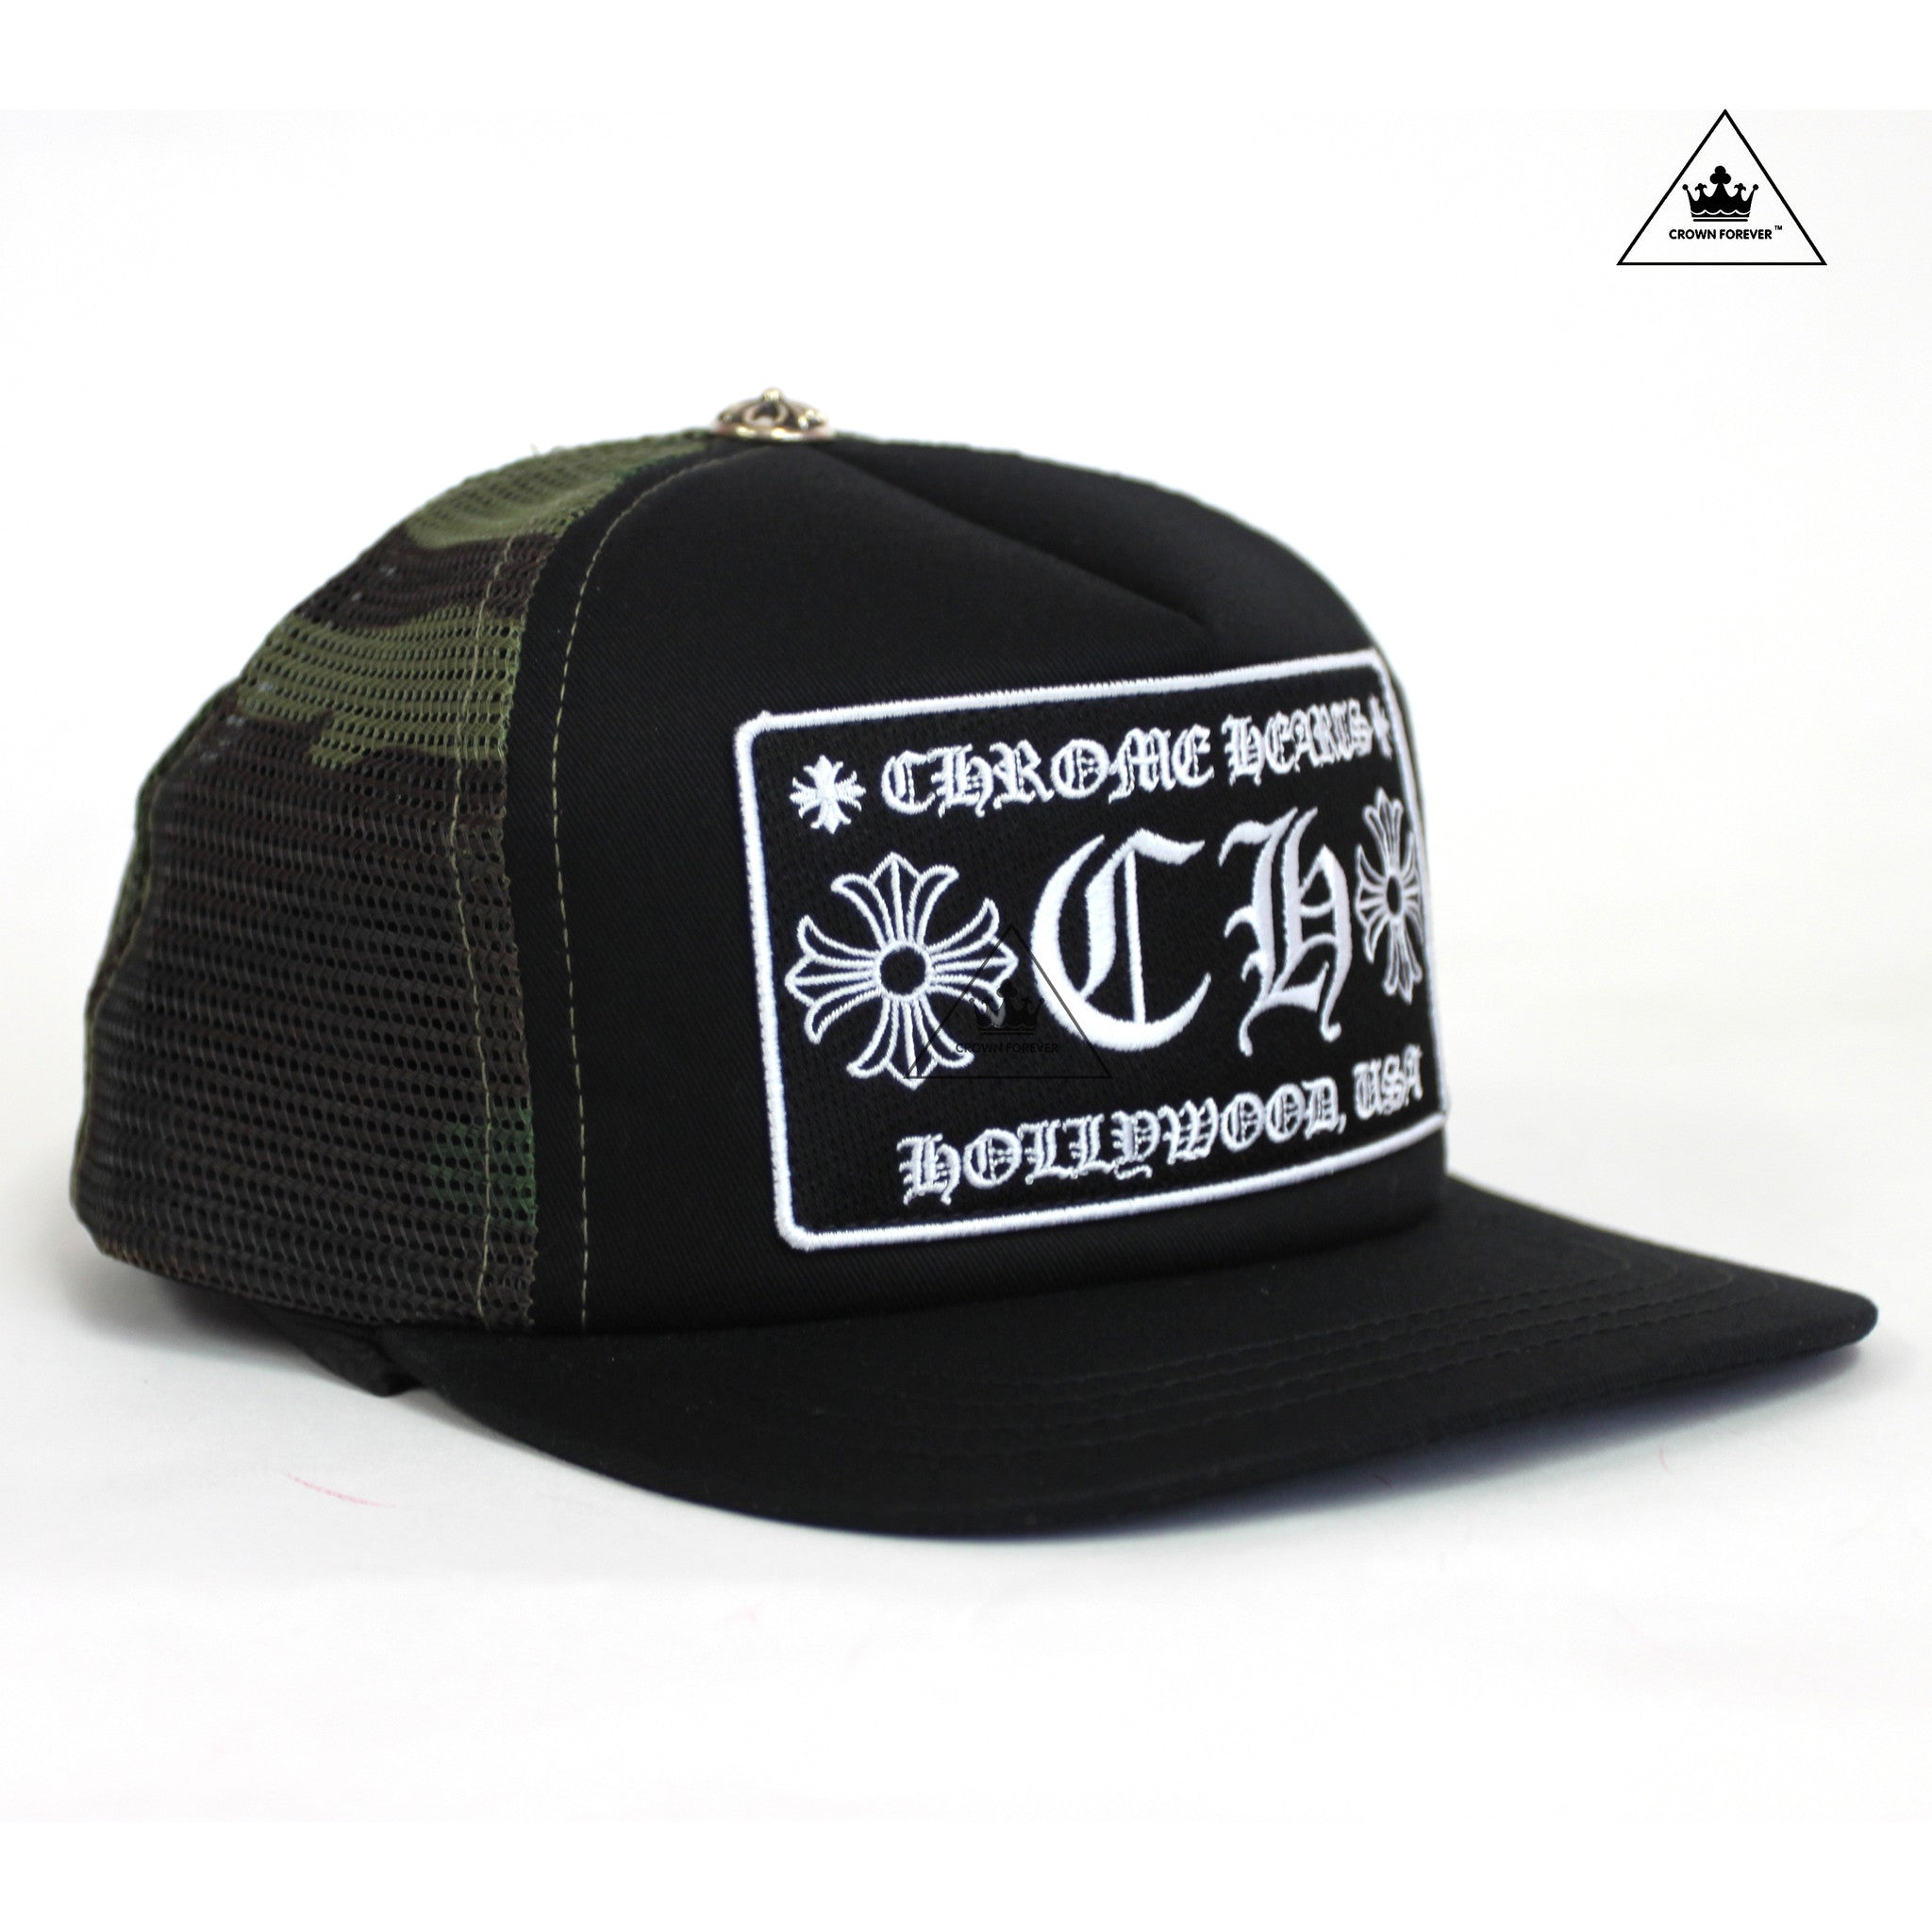 a676dc7245622 Chrome Hearts Hollywood Patch Mesh Trucker Cap Black Camo – Crown ...